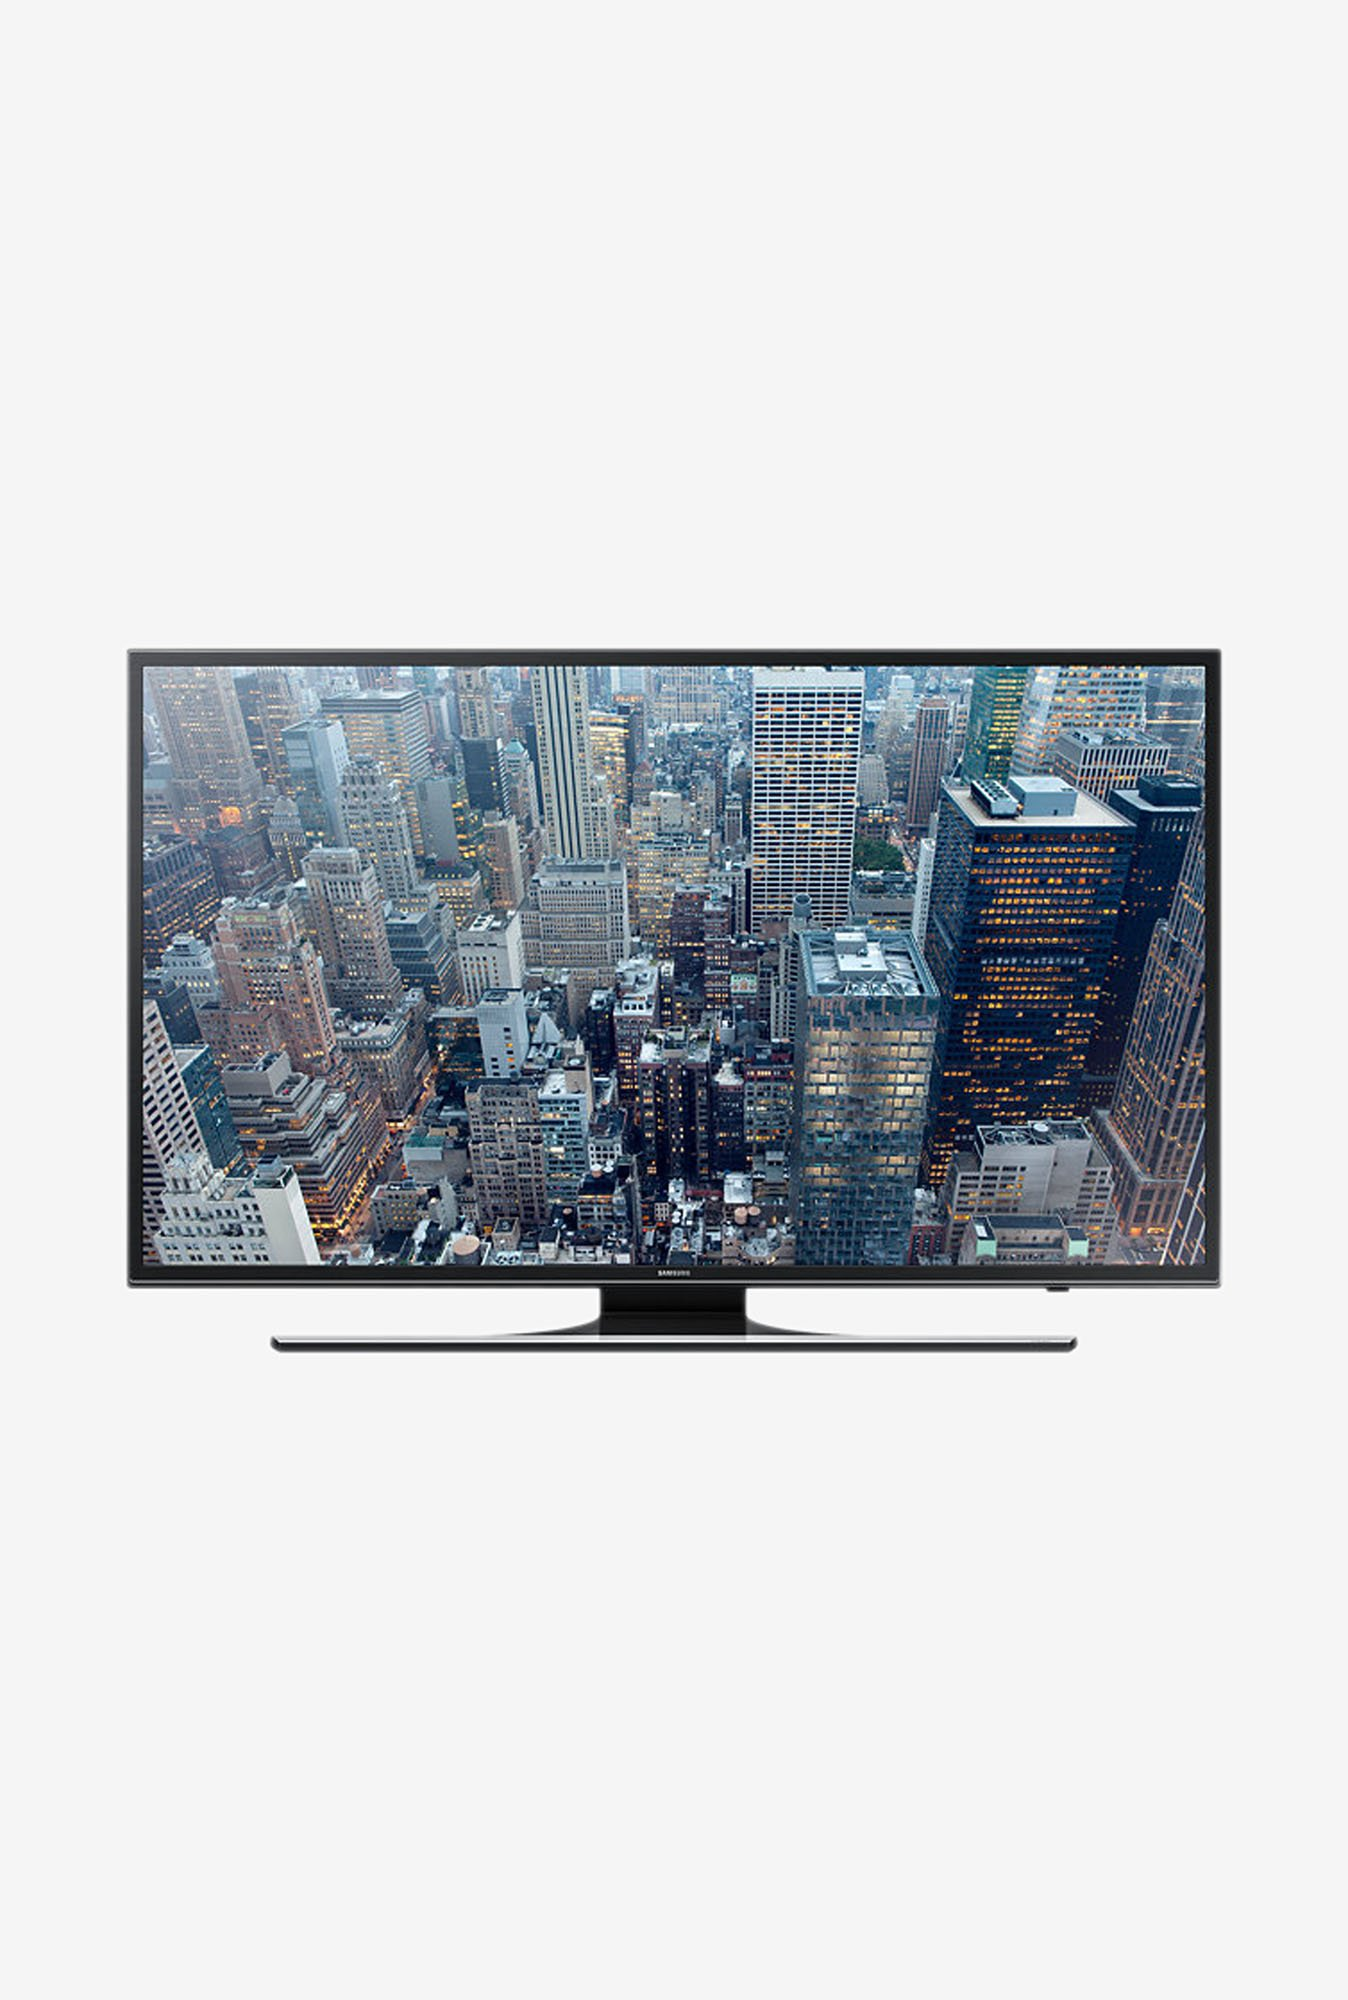 Samsung 48JU6470 121.92Cm (48 Inch) UHD 4K Smart TV (Black)